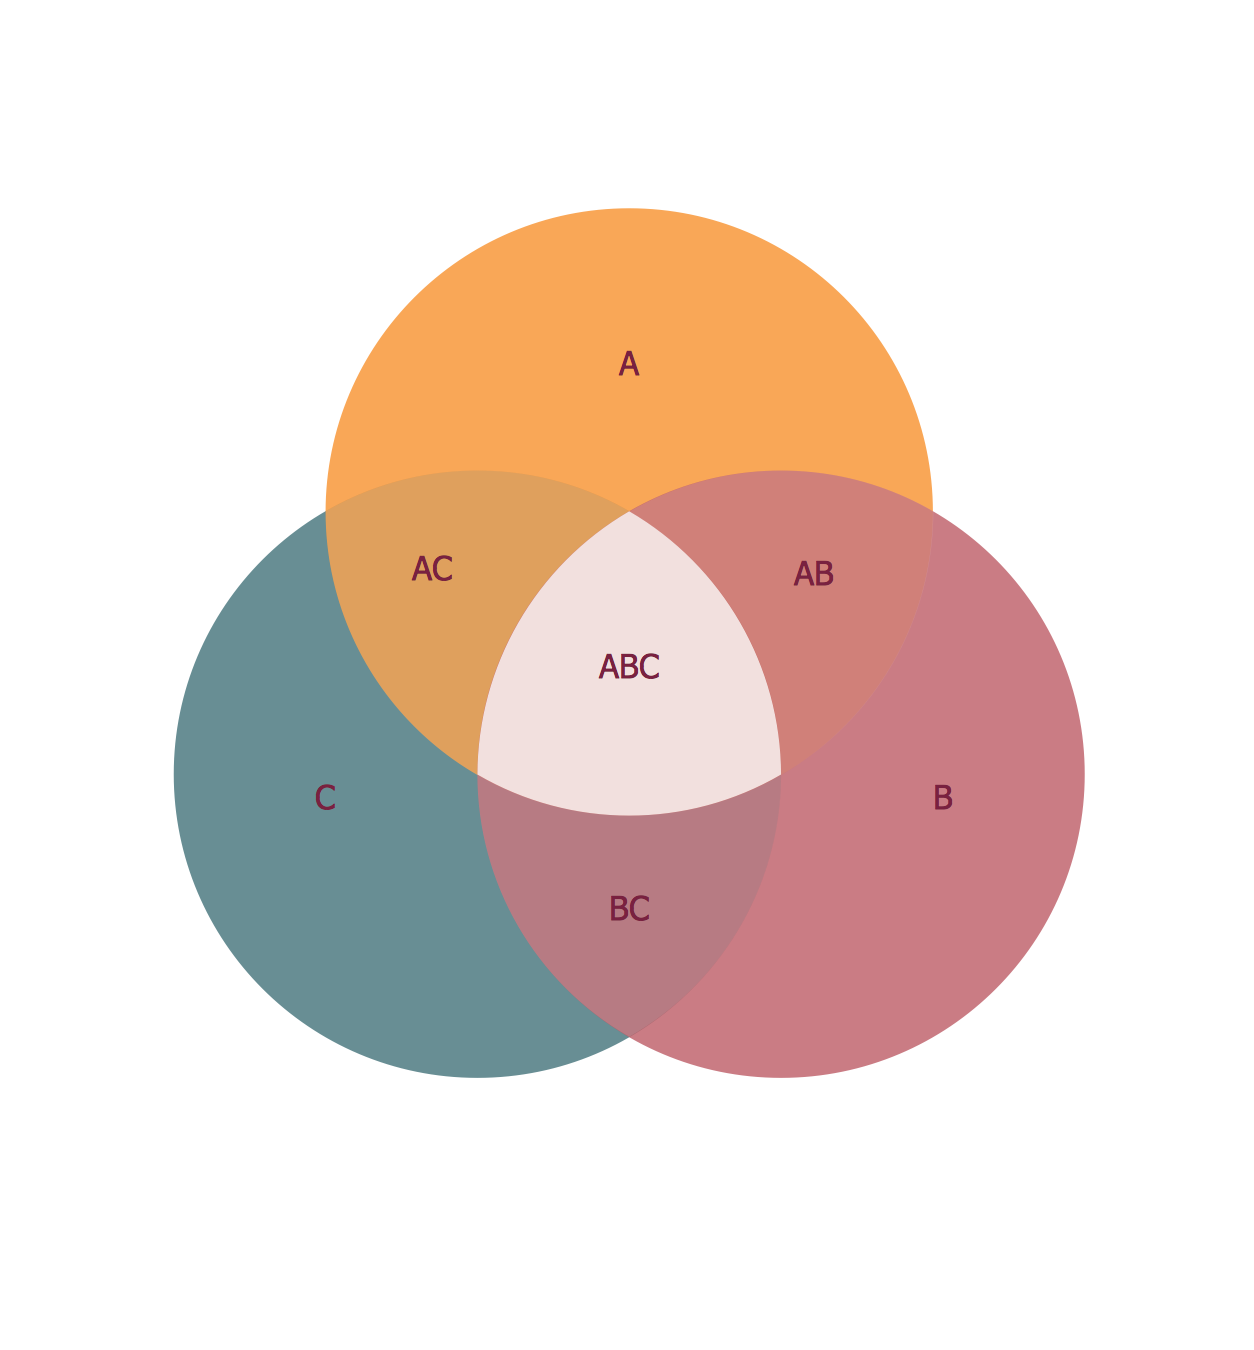 Venn diagram examples for logic problem solving venn diagram as a venn diagram example 3 circle venn pooptronica